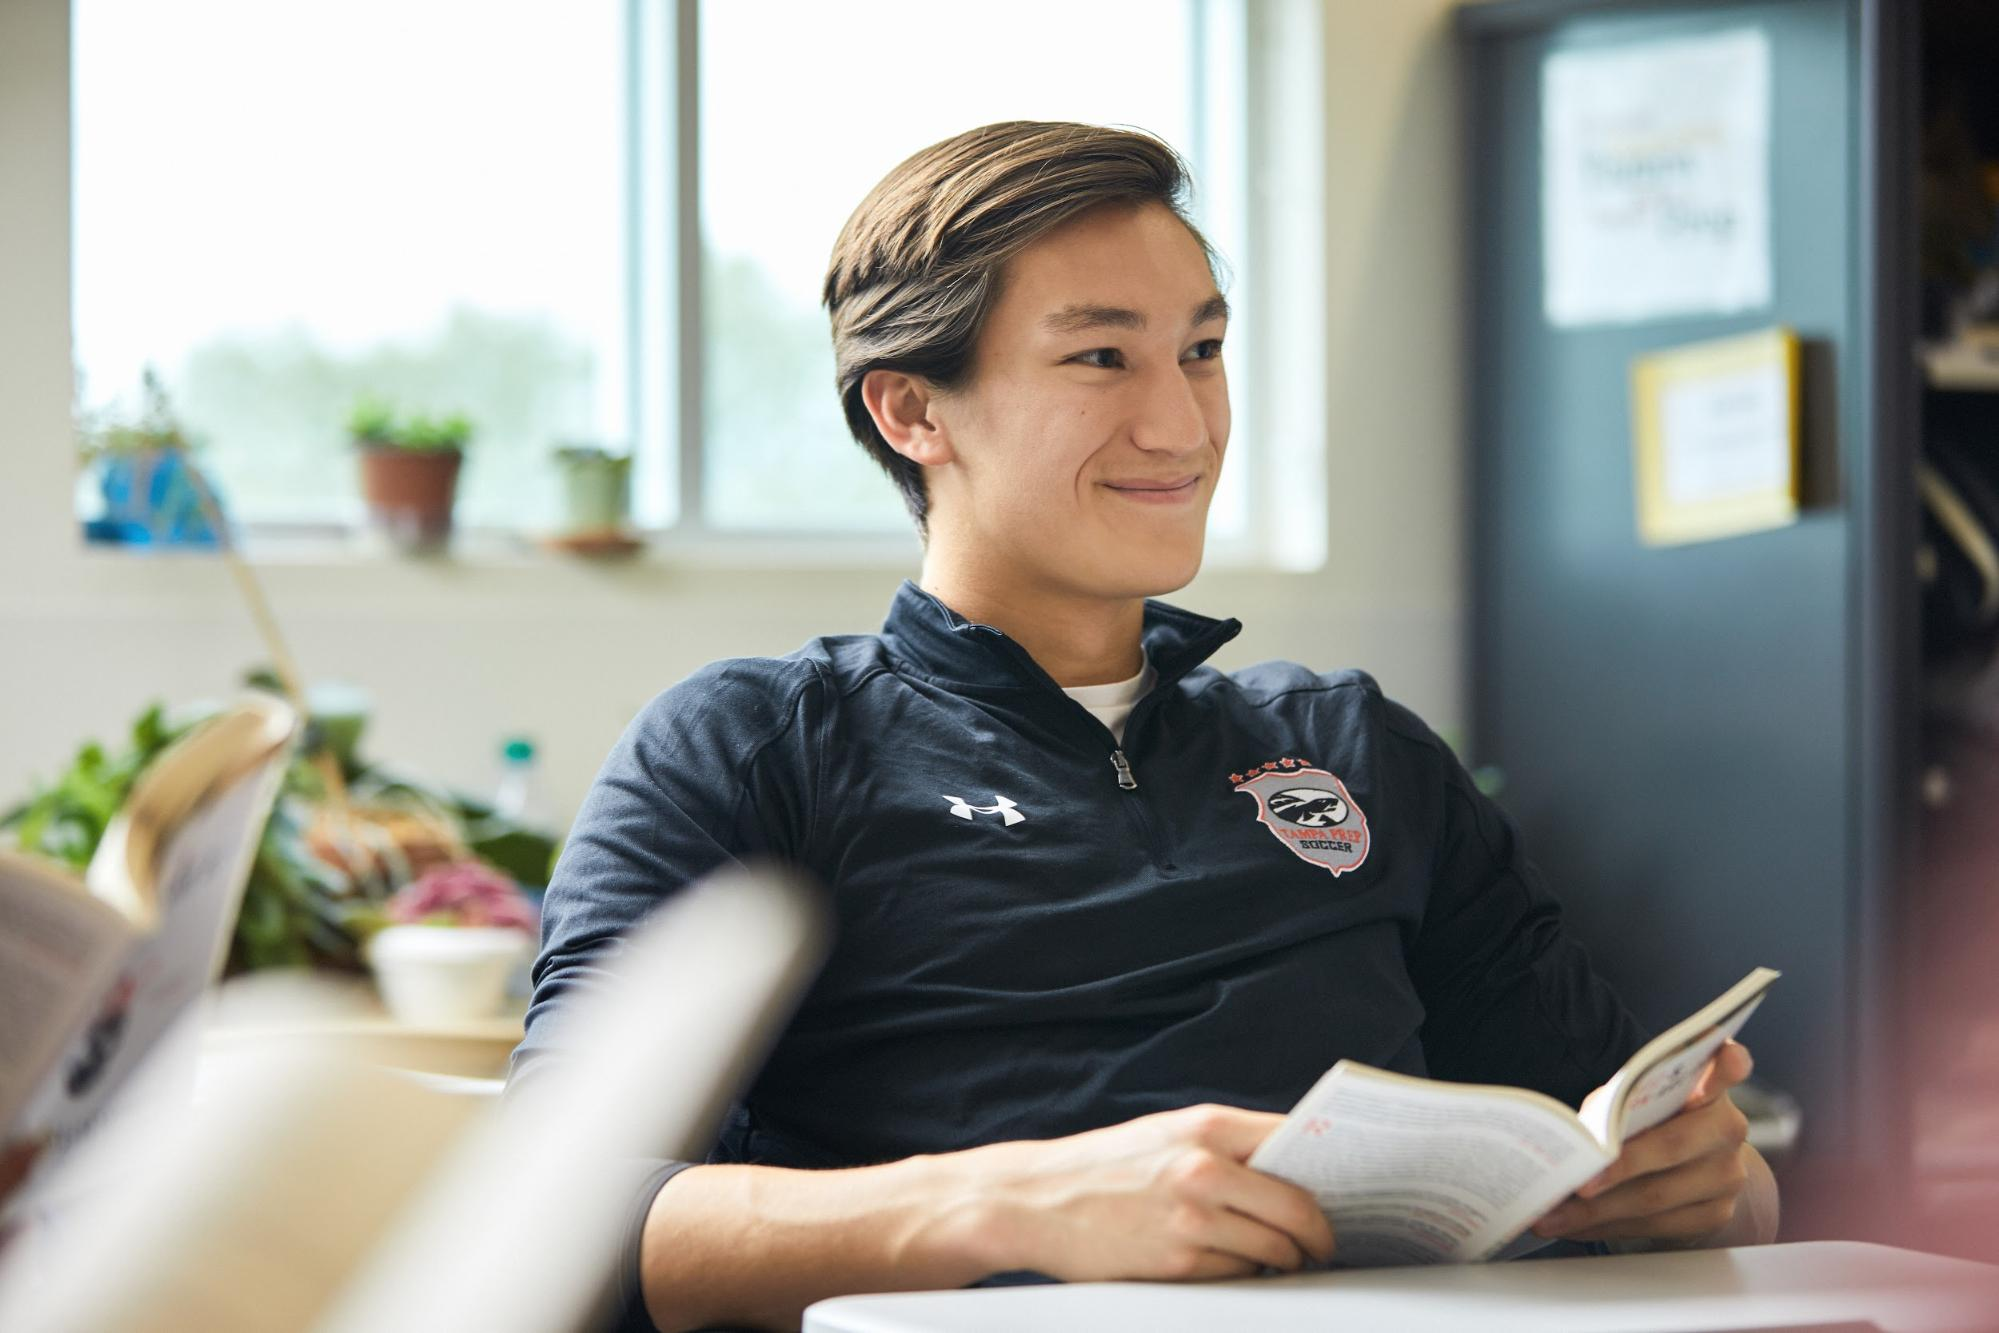 Boy smiling with book in English class